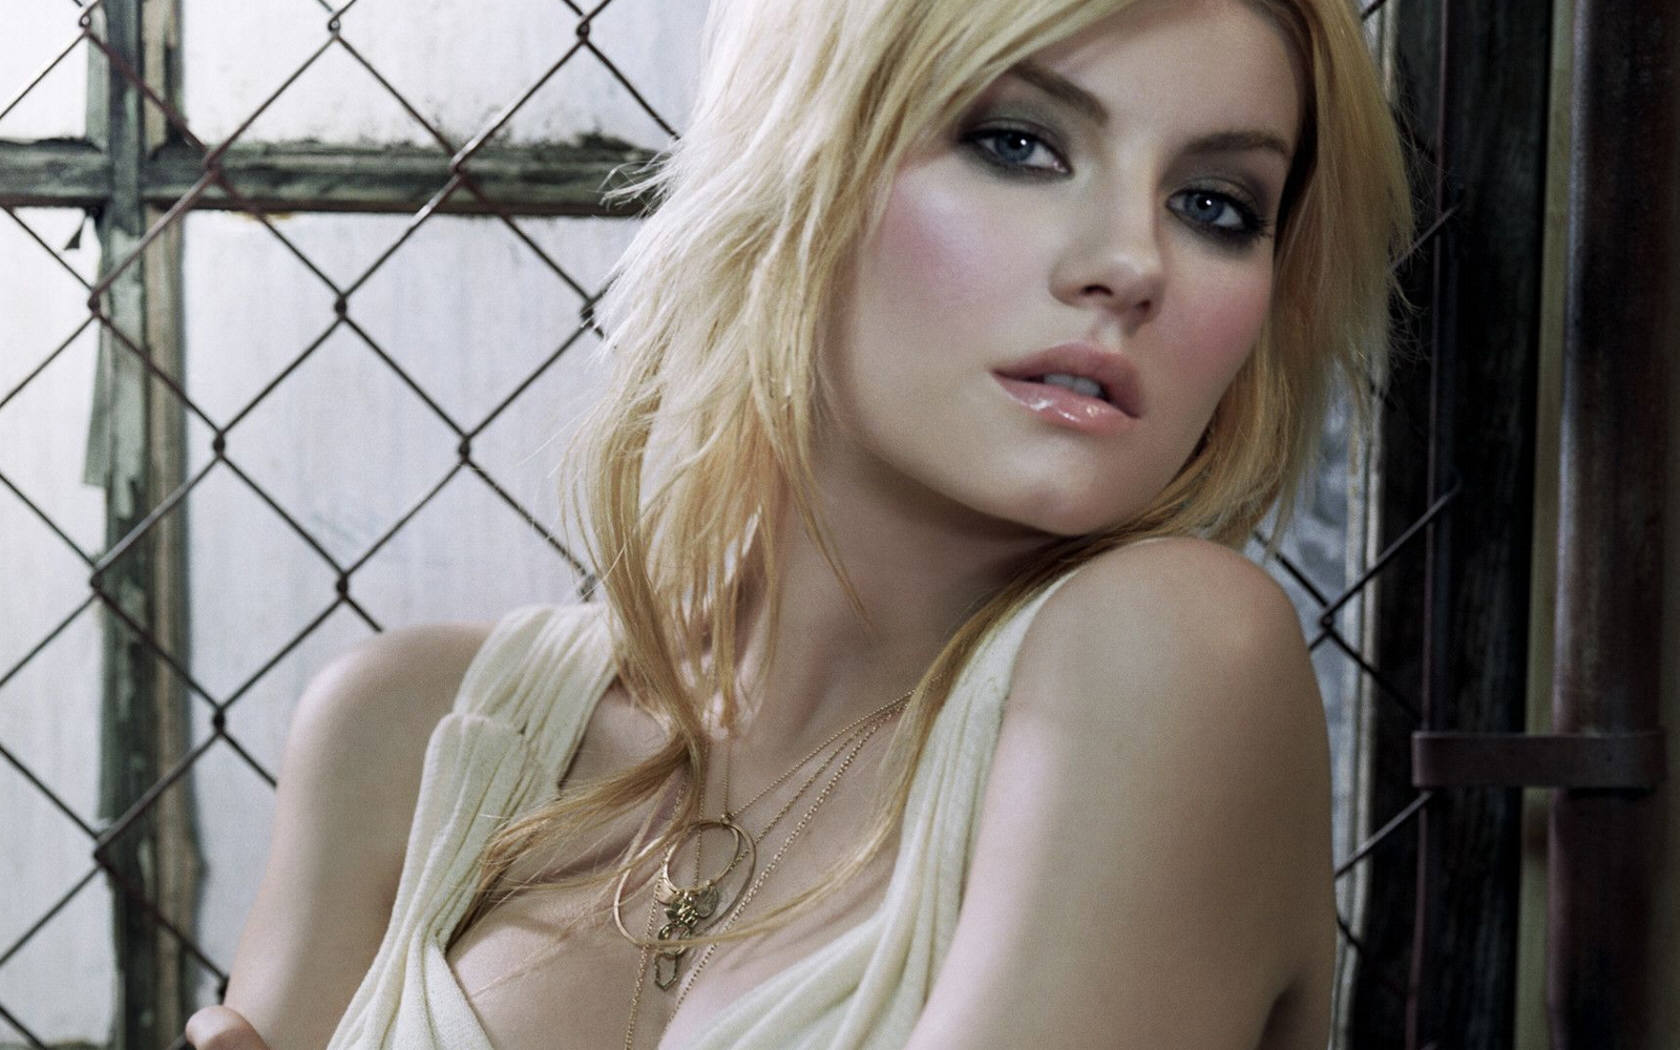 Elisha Cuthbert Wallpapers, 195.65 Kb